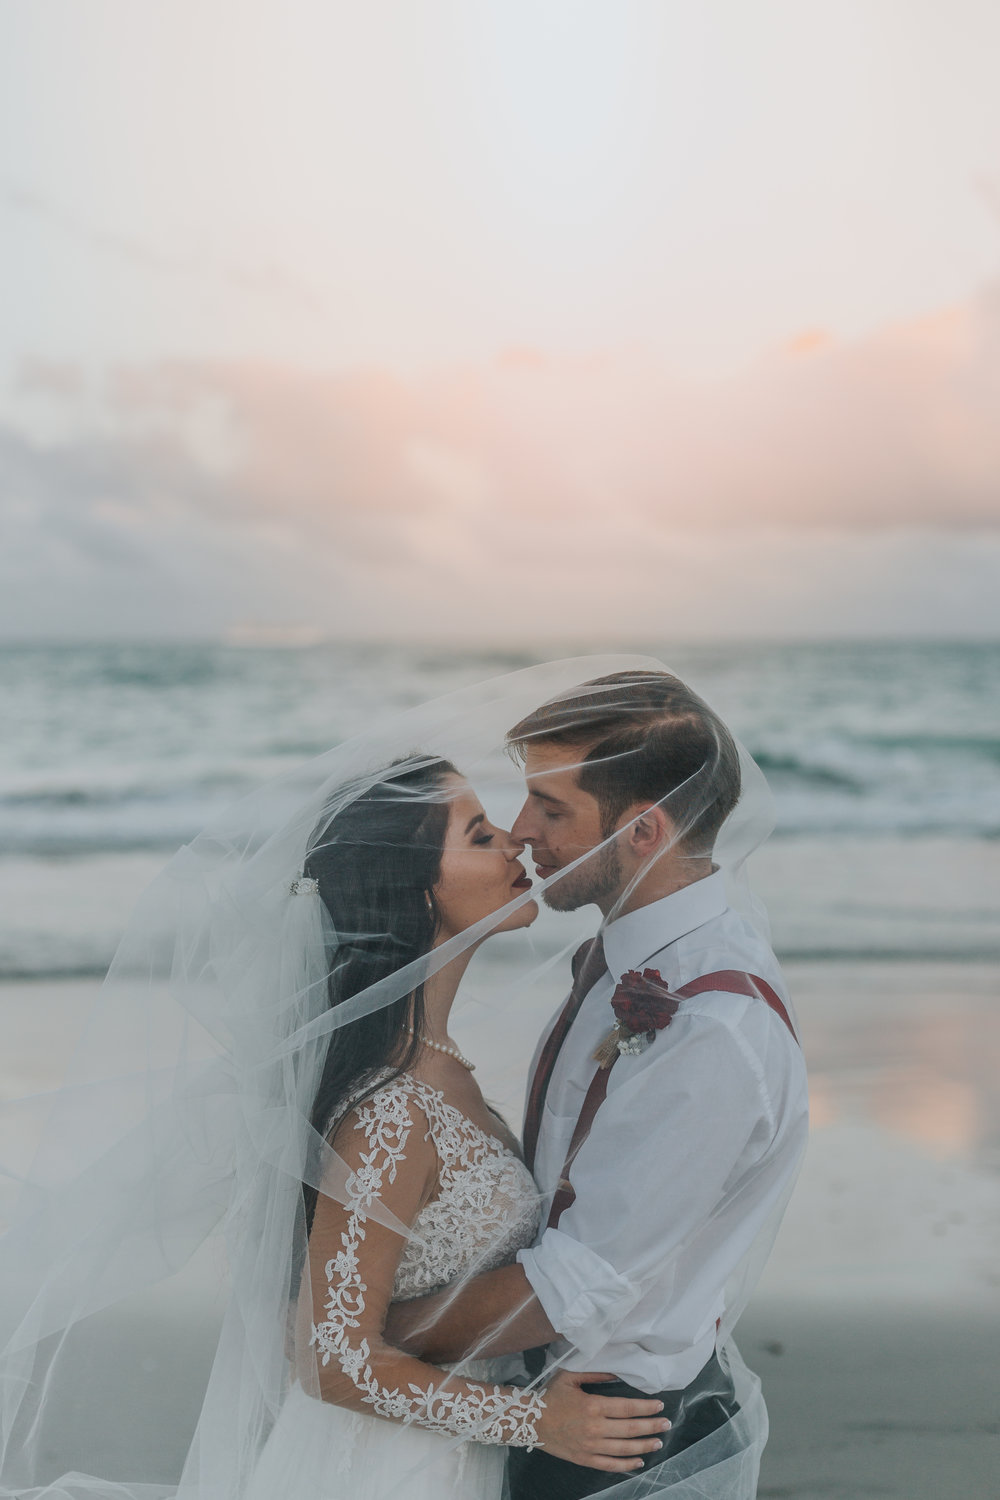 Jacquelynn + Scott<strong>Hollywood, FL</strong>